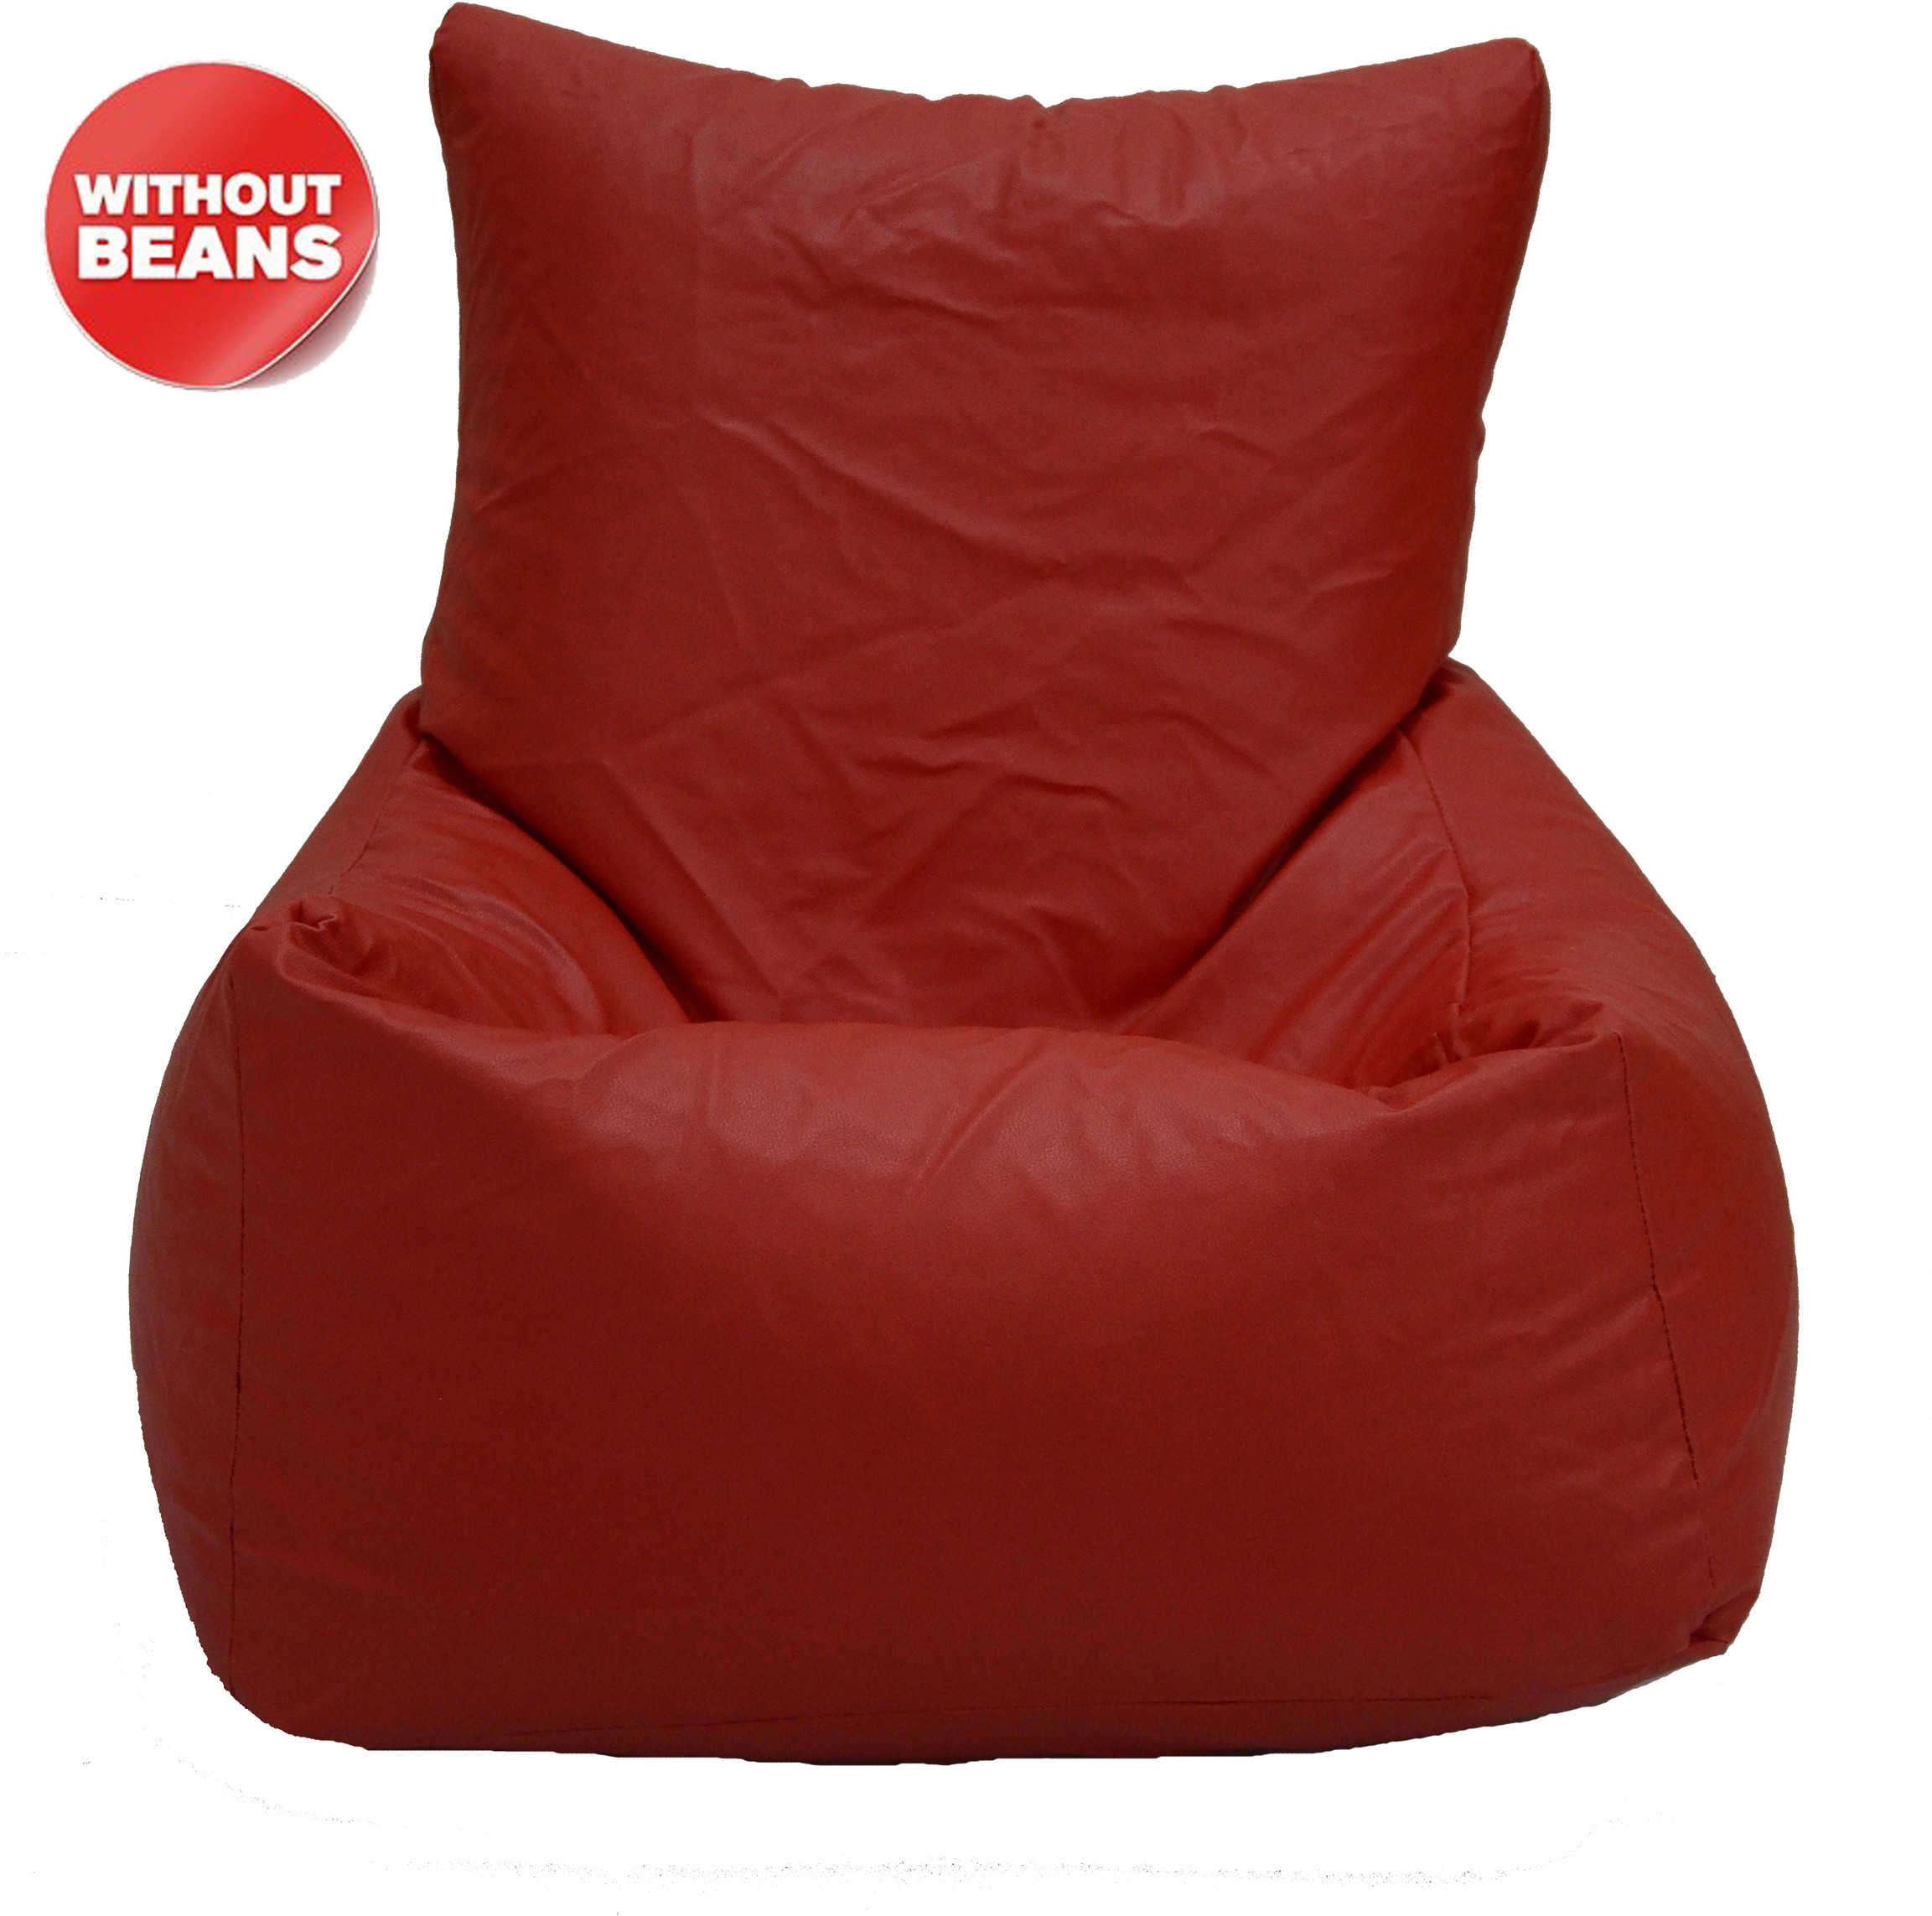 View meSleep XXL Bean Chair Cover(Red) Furniture (meSleep)